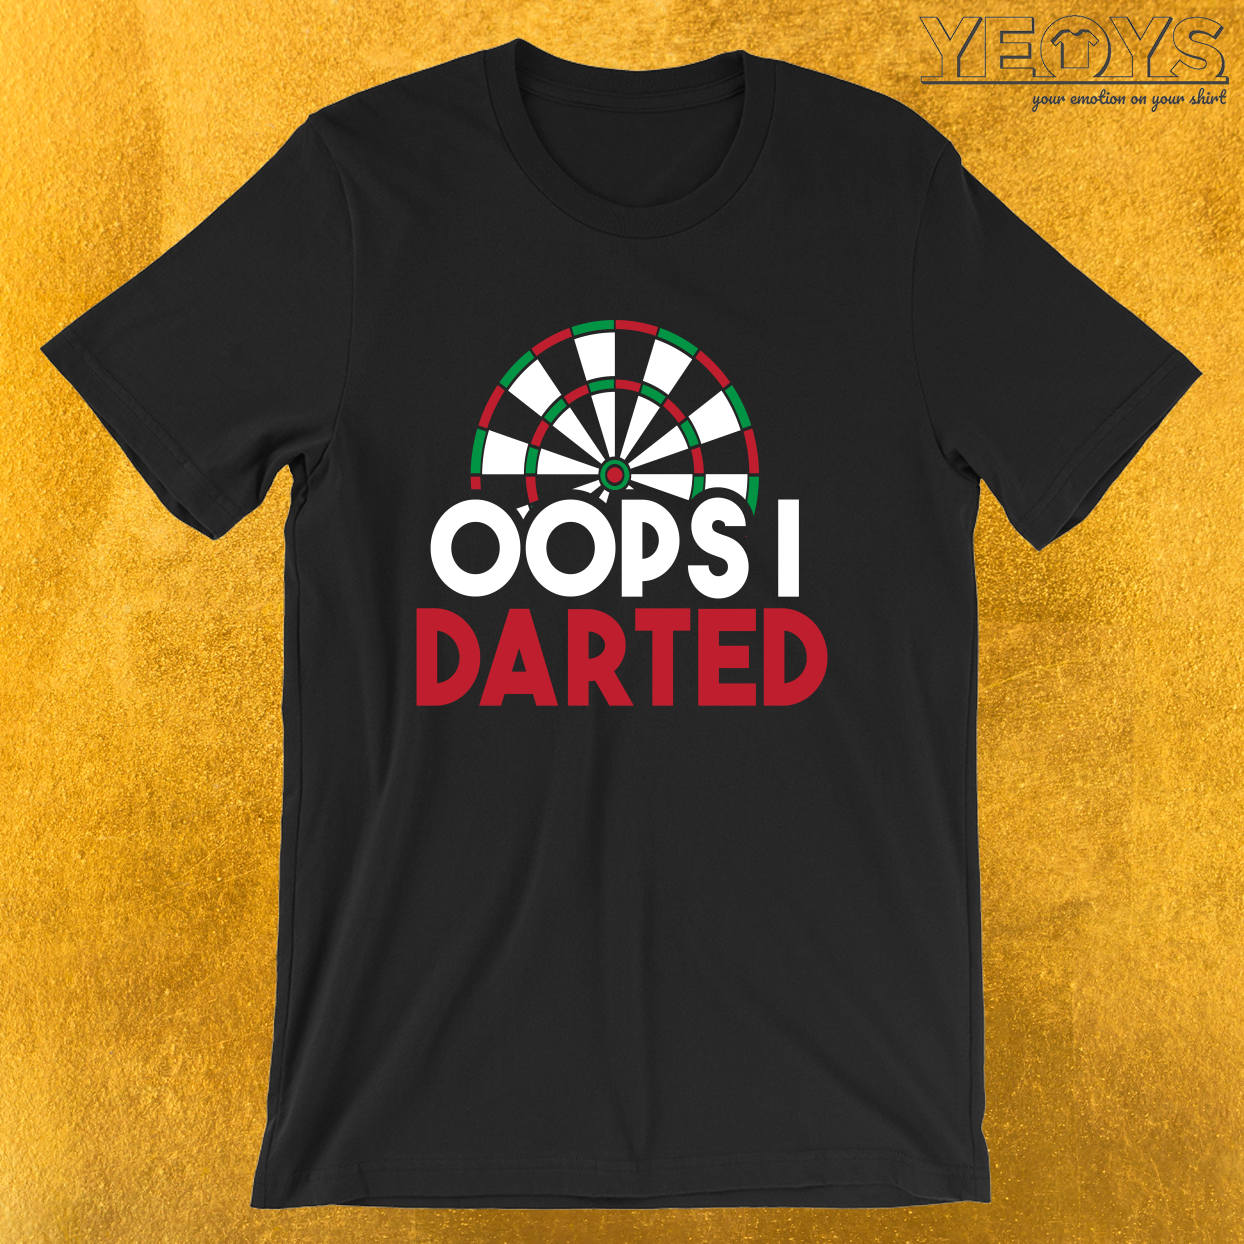 Darts & Bullseye – Oops I Darted Tee